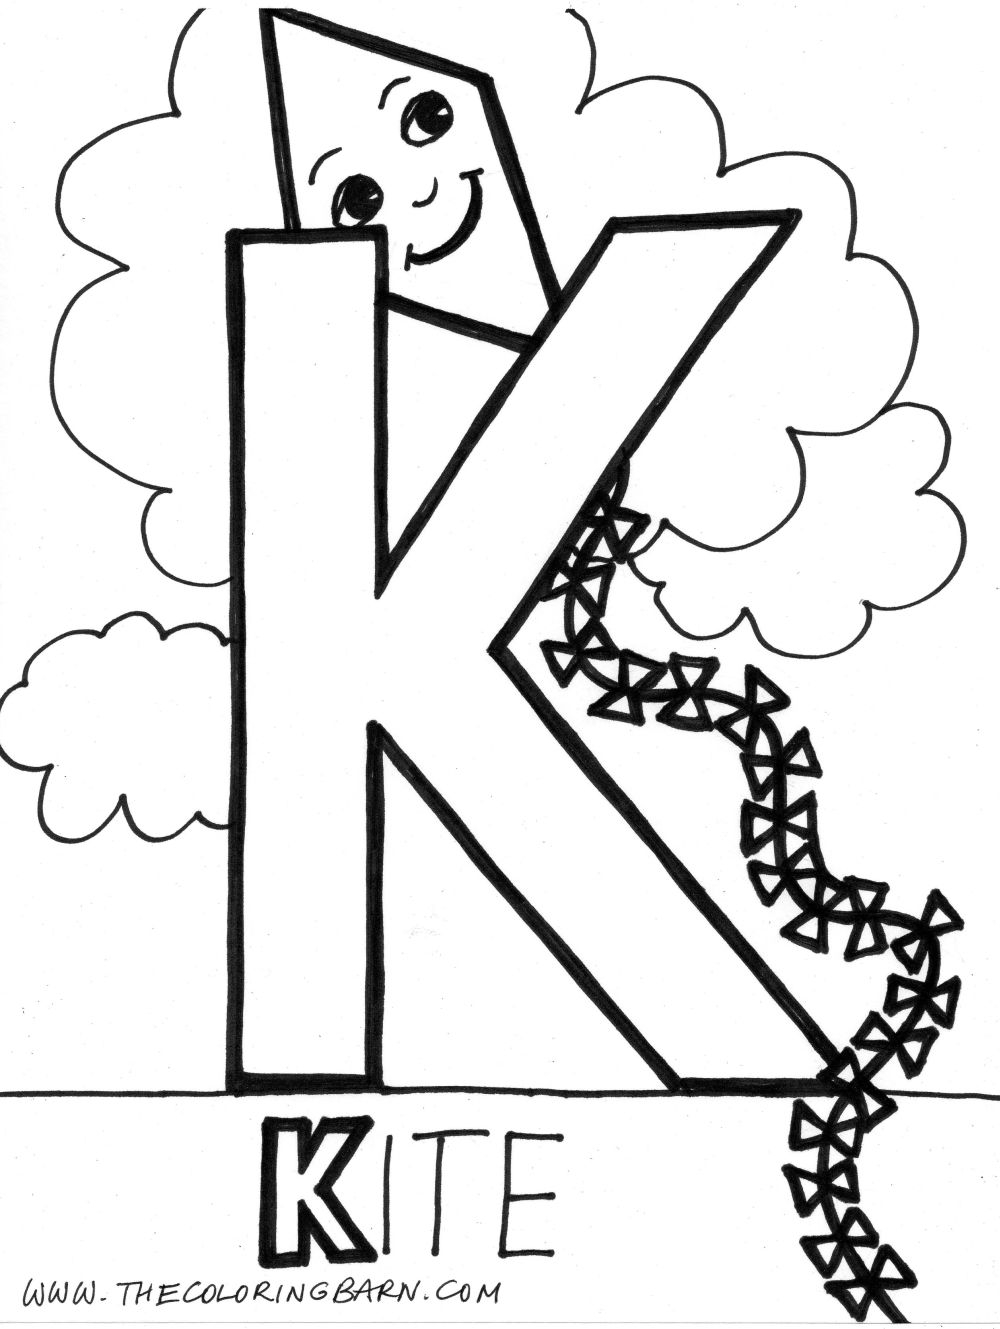 letter k coloring page - 707